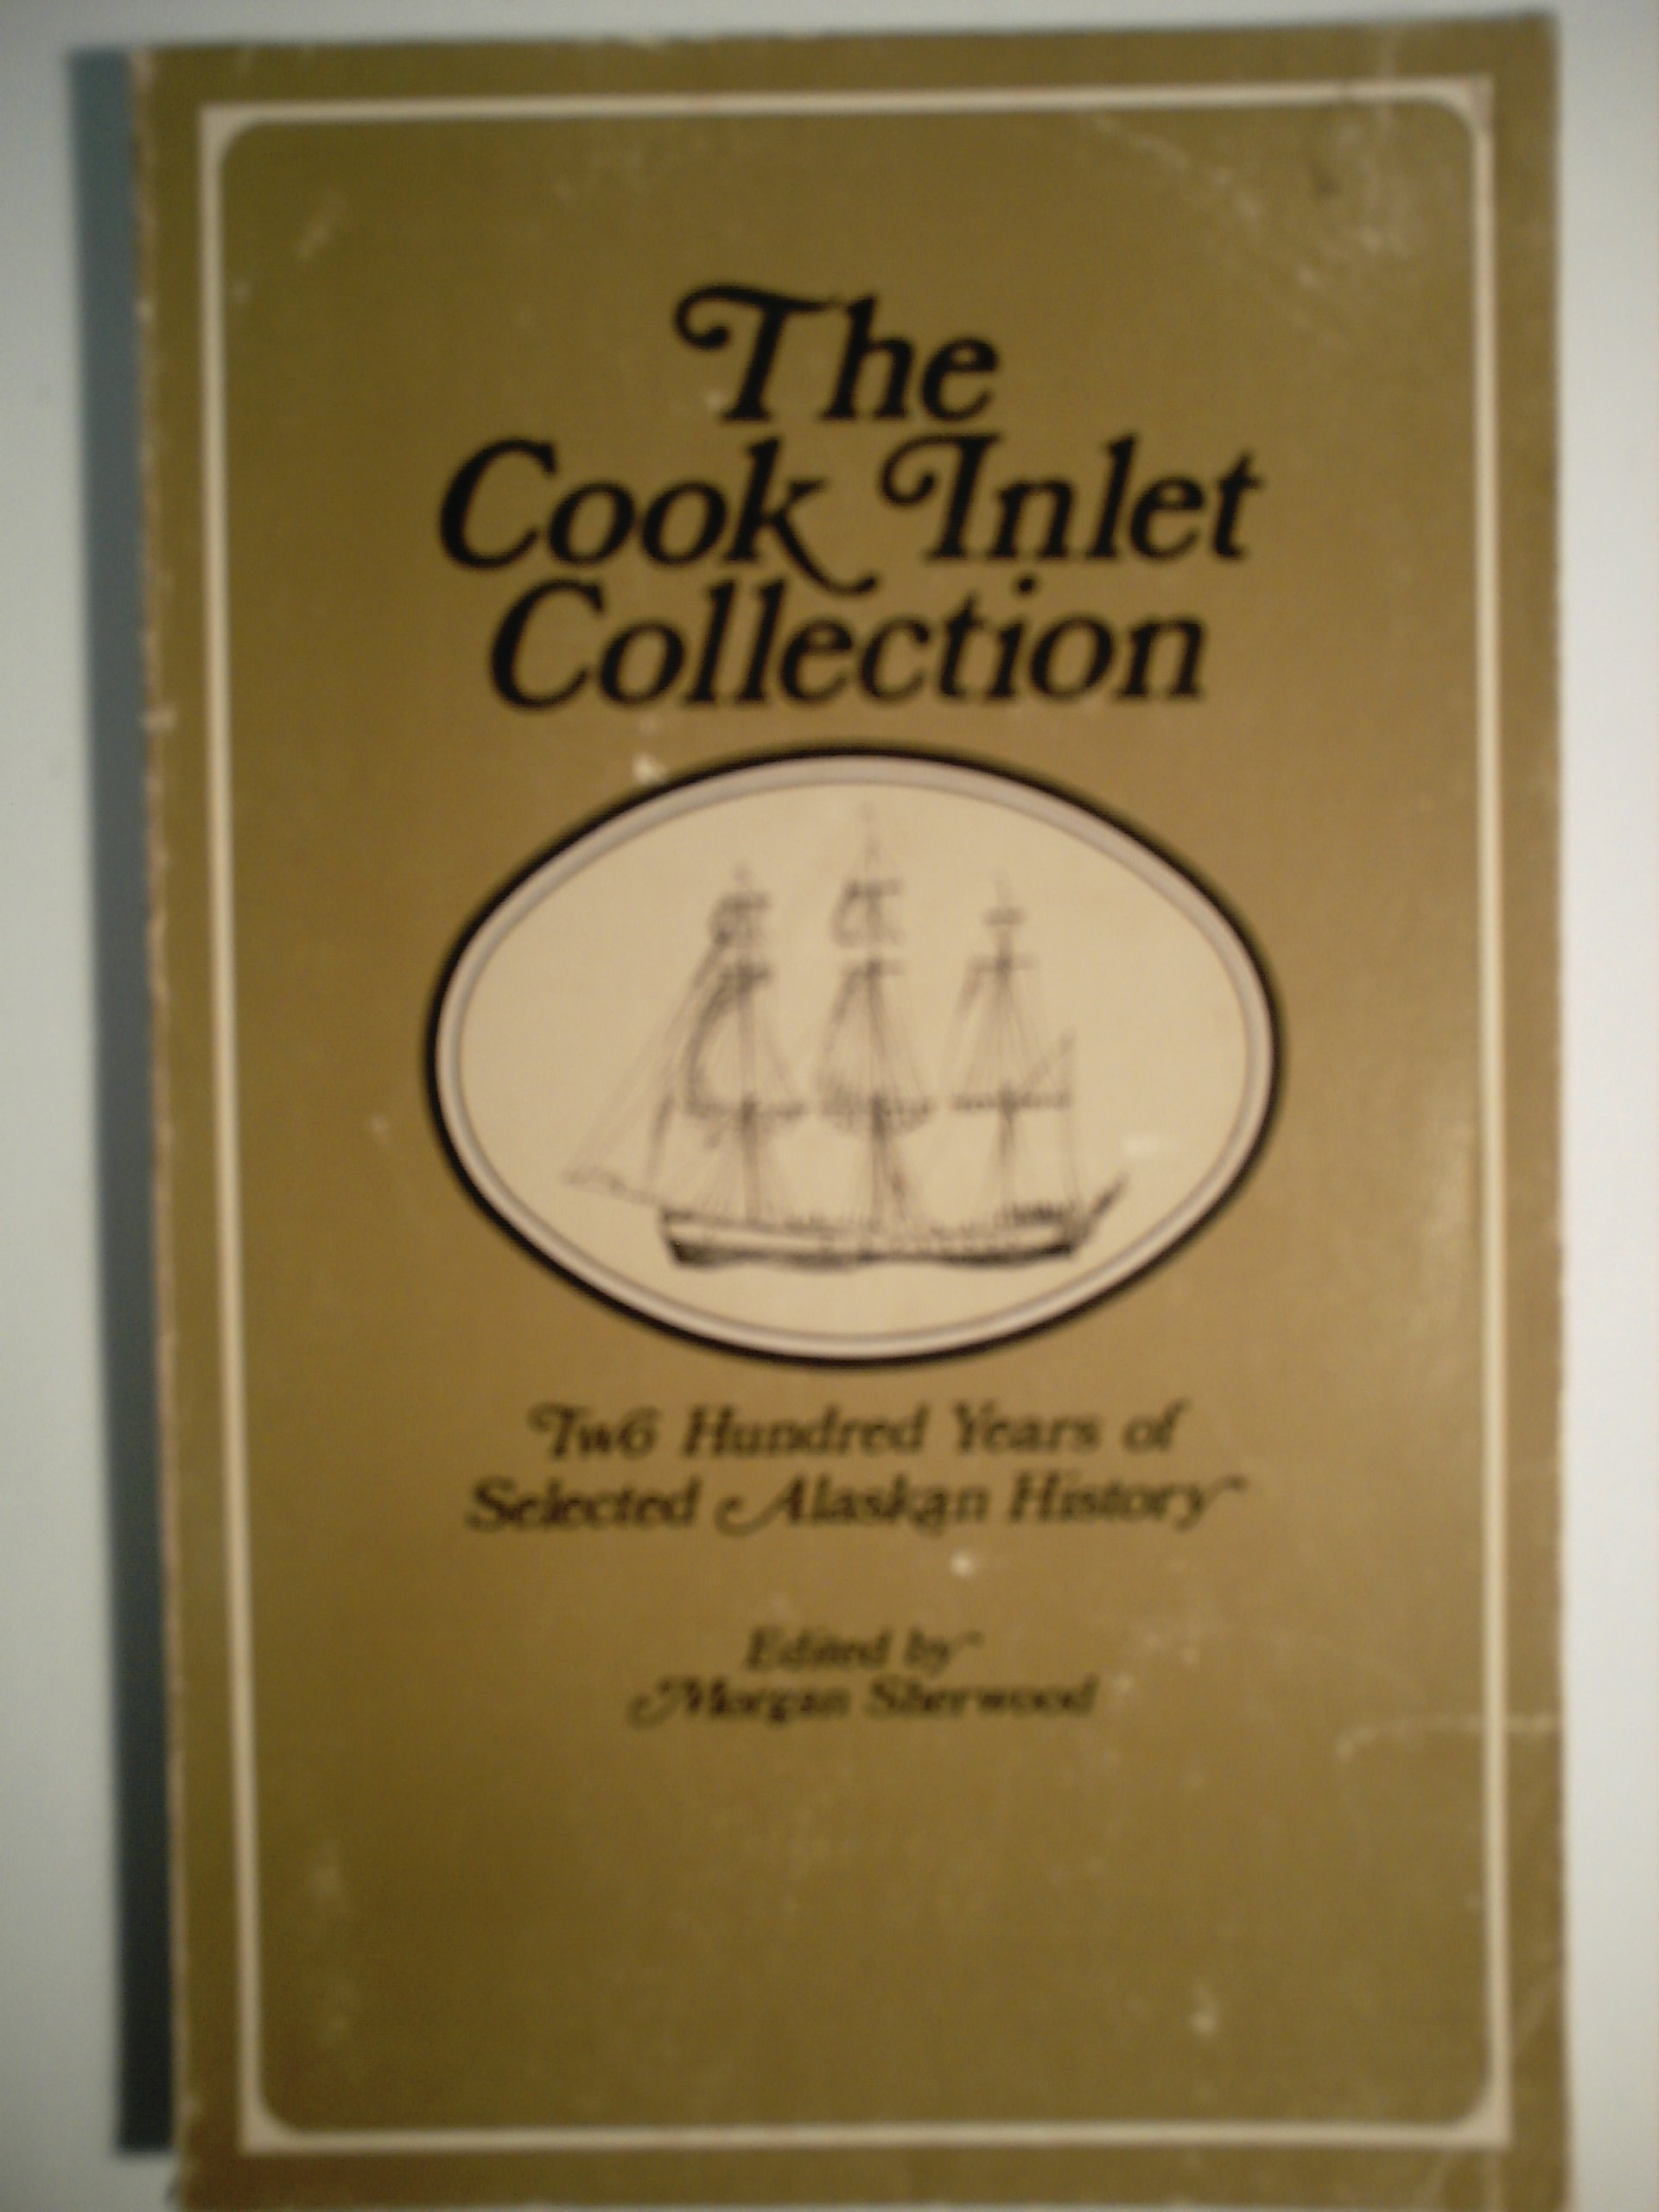 The Cook Inlet collection: Two hundred years of selected Alaskan history, Sherwood, Morgan B.